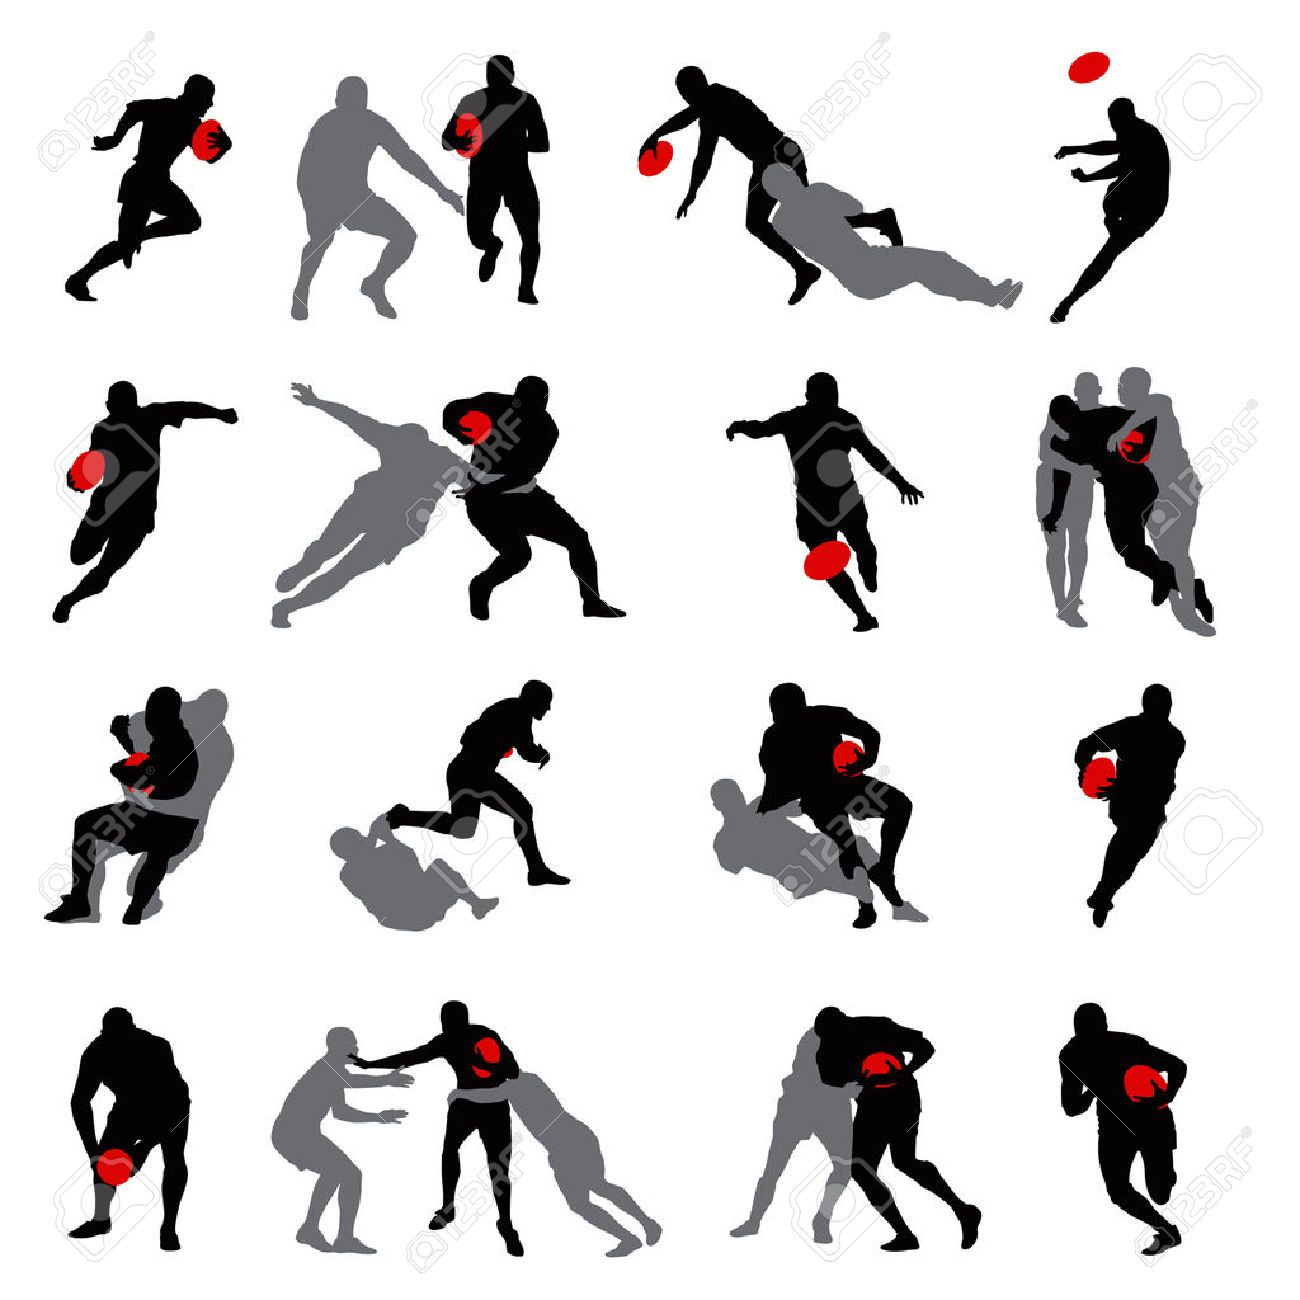 1300x1300 6254248 Rugby Action Group Poses Silhouette 02 Stock Vector Player